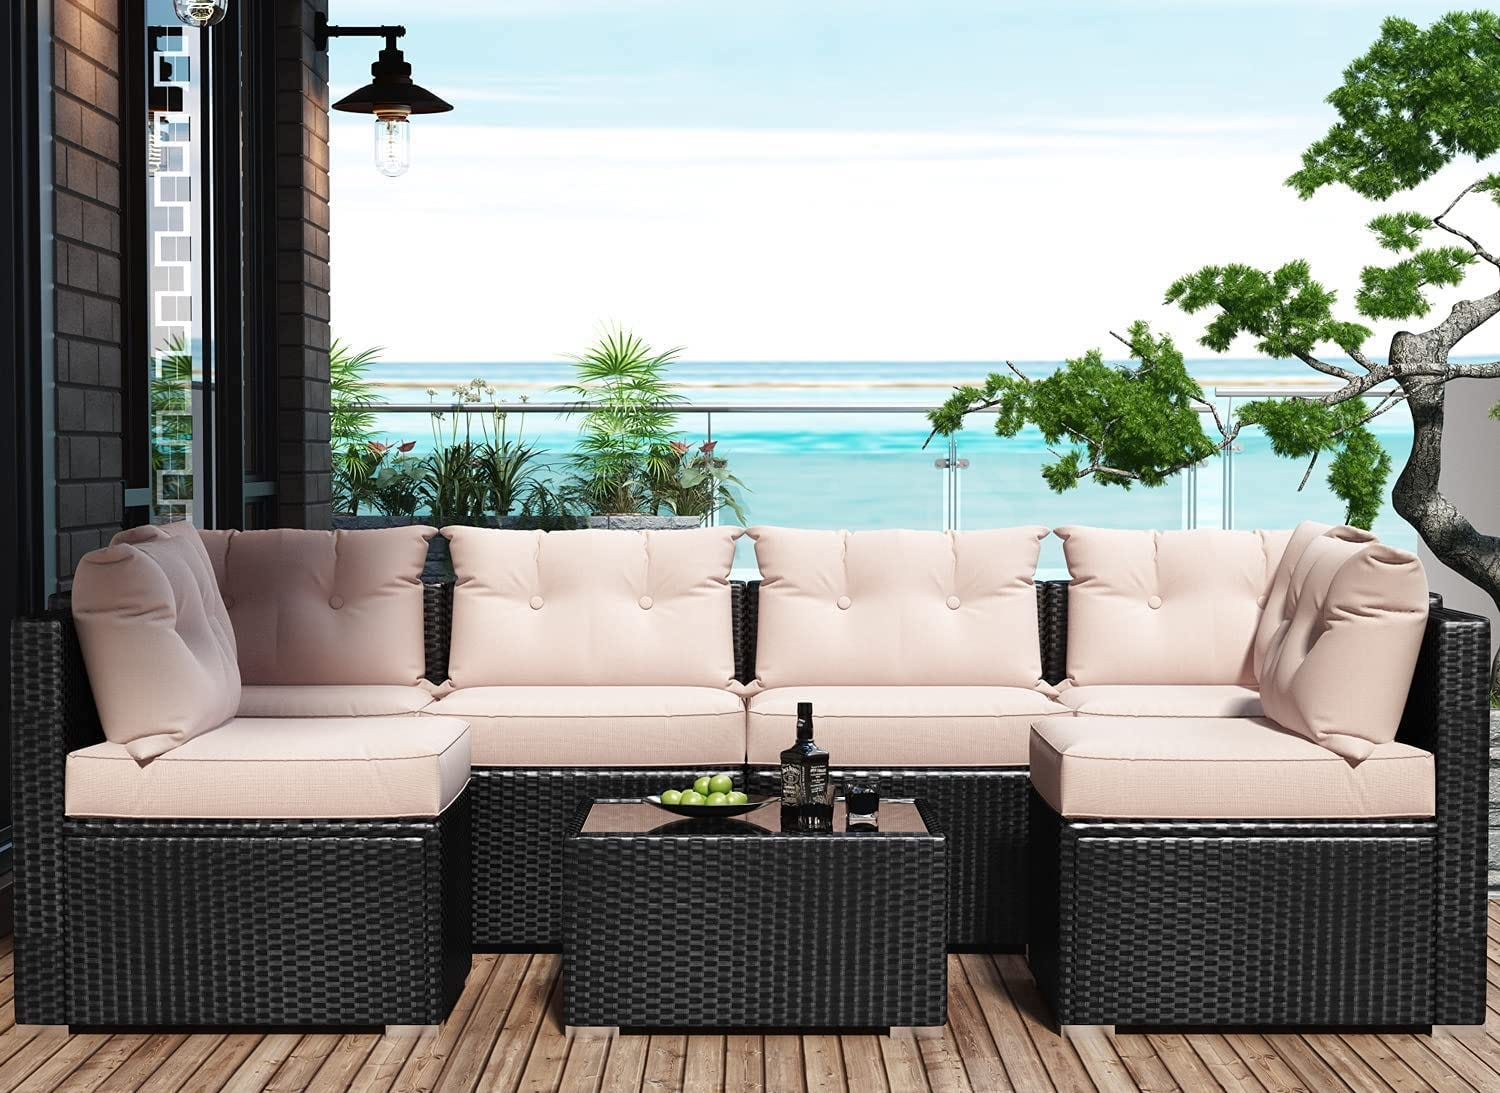 A beige and rattan outdoor sofa with tufted cushions, with the beach in the background